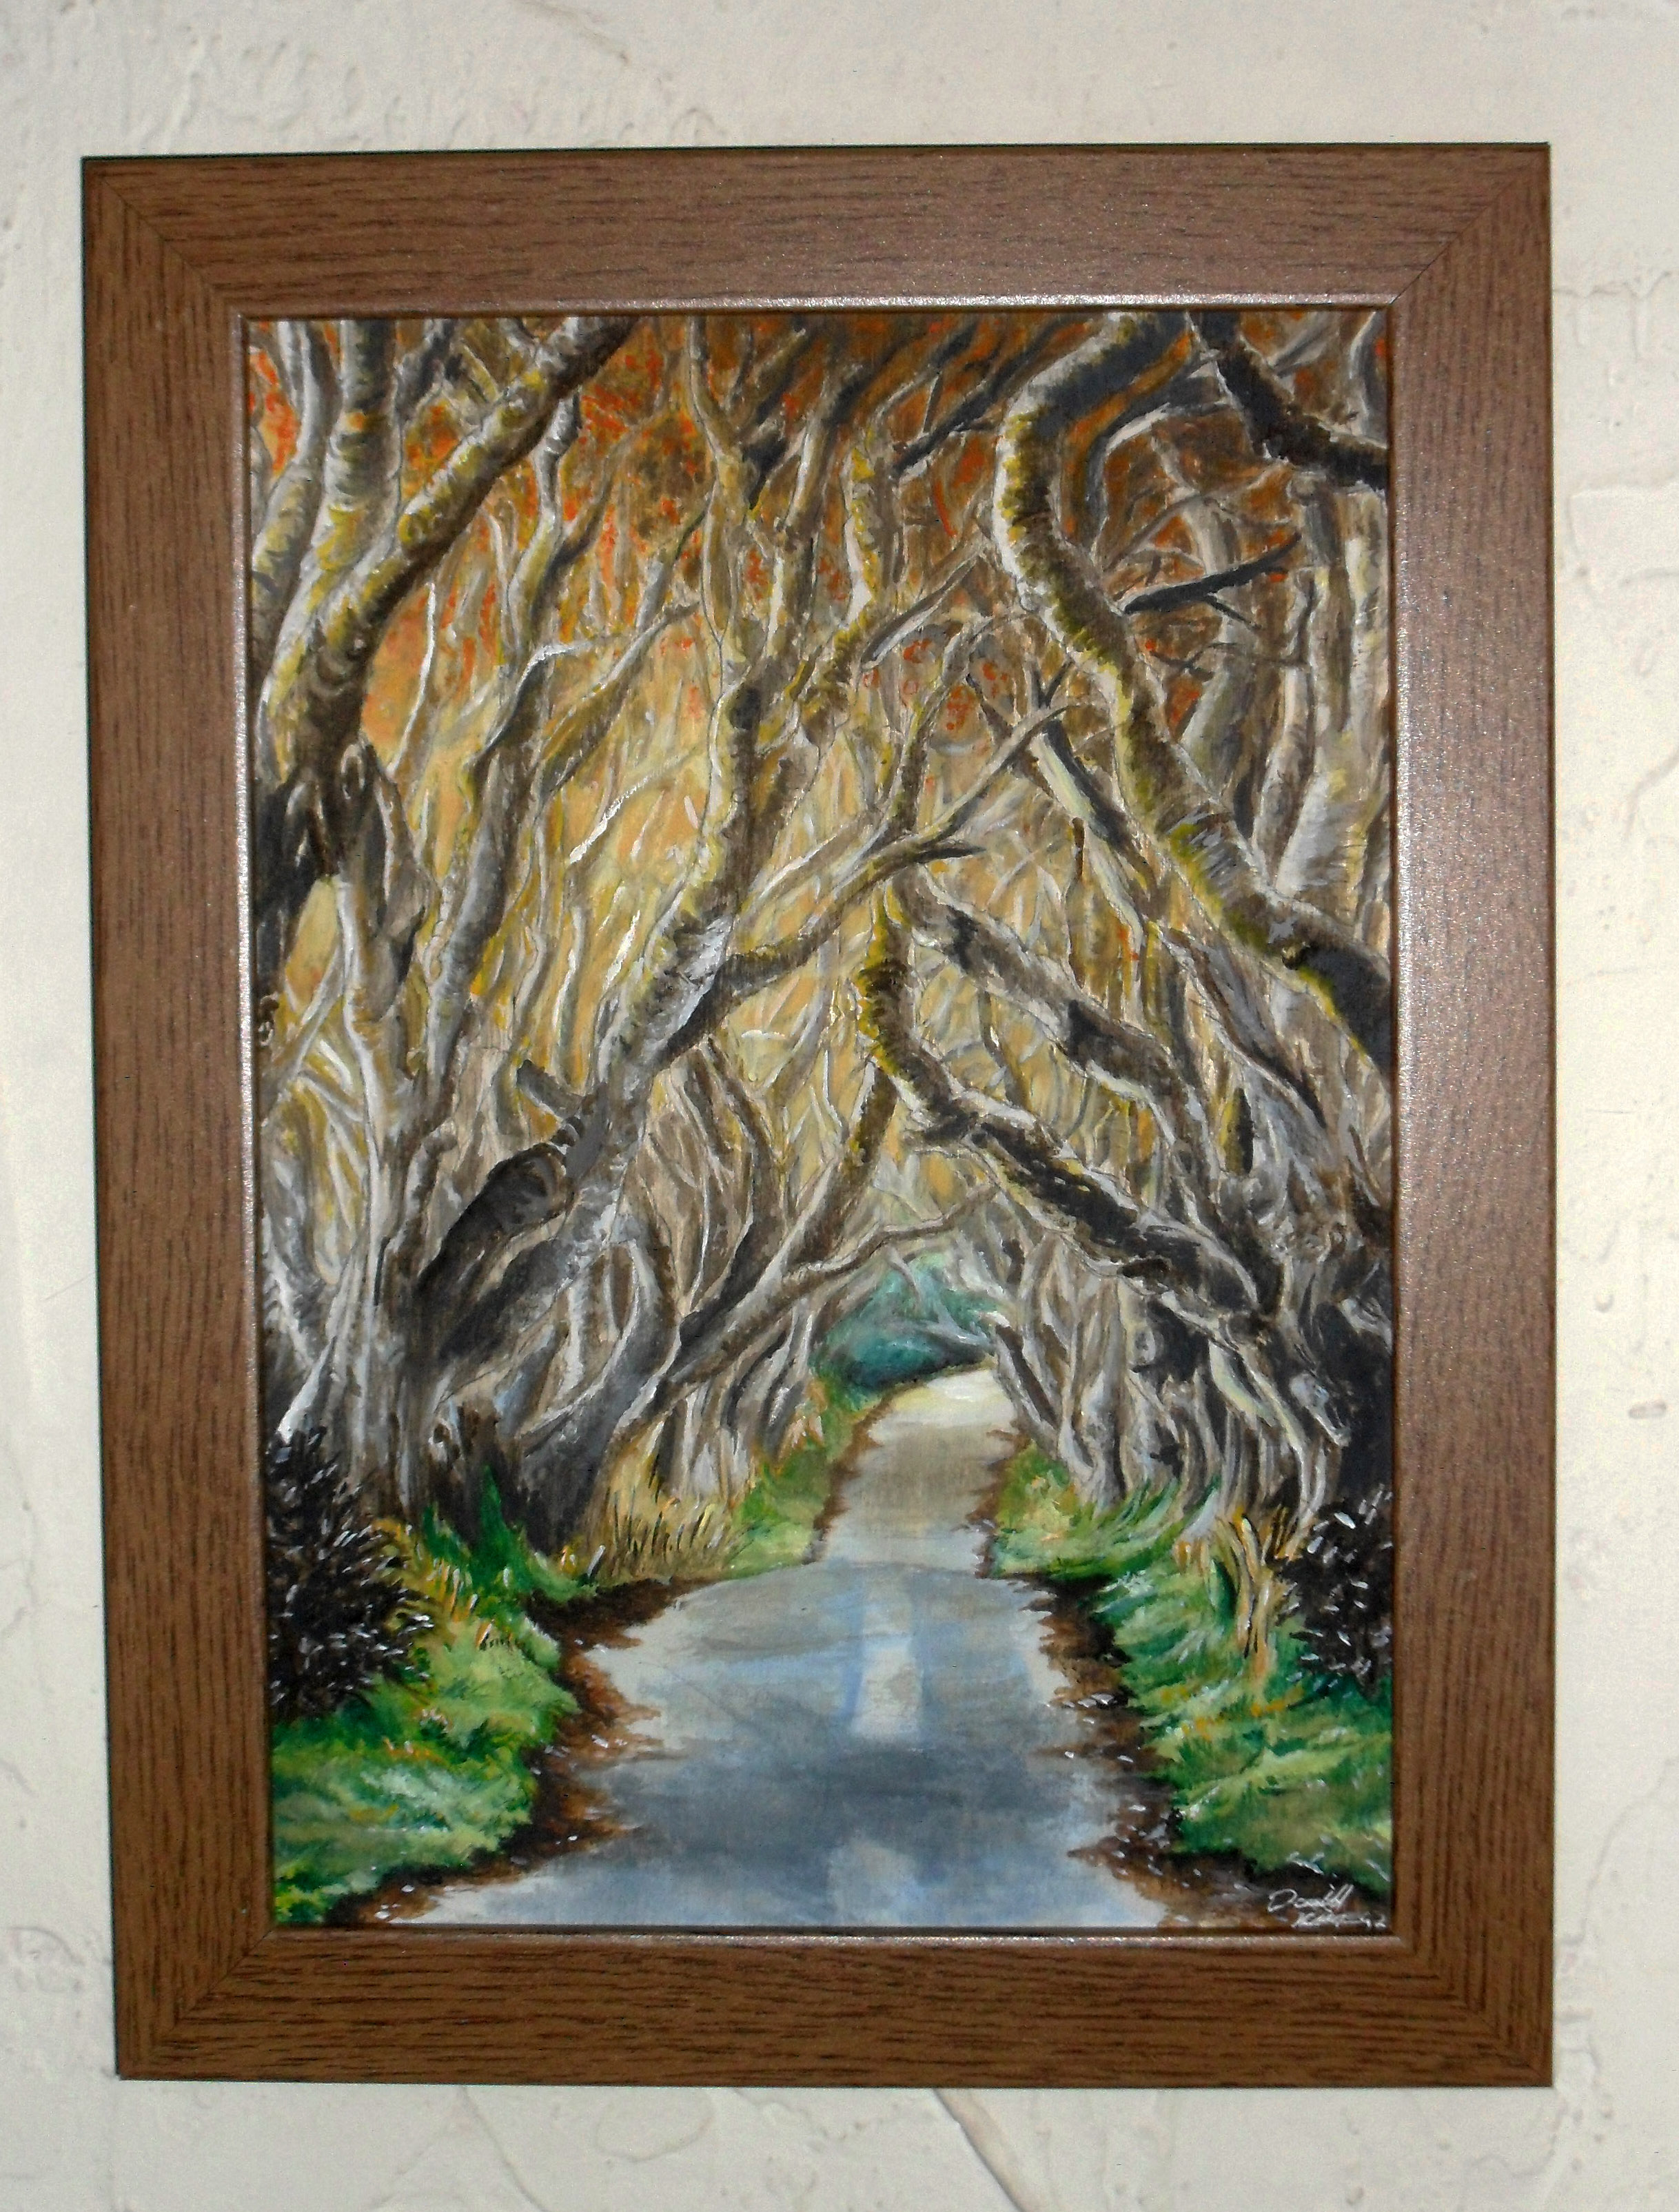 'The Interwoven Path' Framed Original ~Pencil & Watercolour on A4 Primed Birch Plywood ~£90 plus p+p